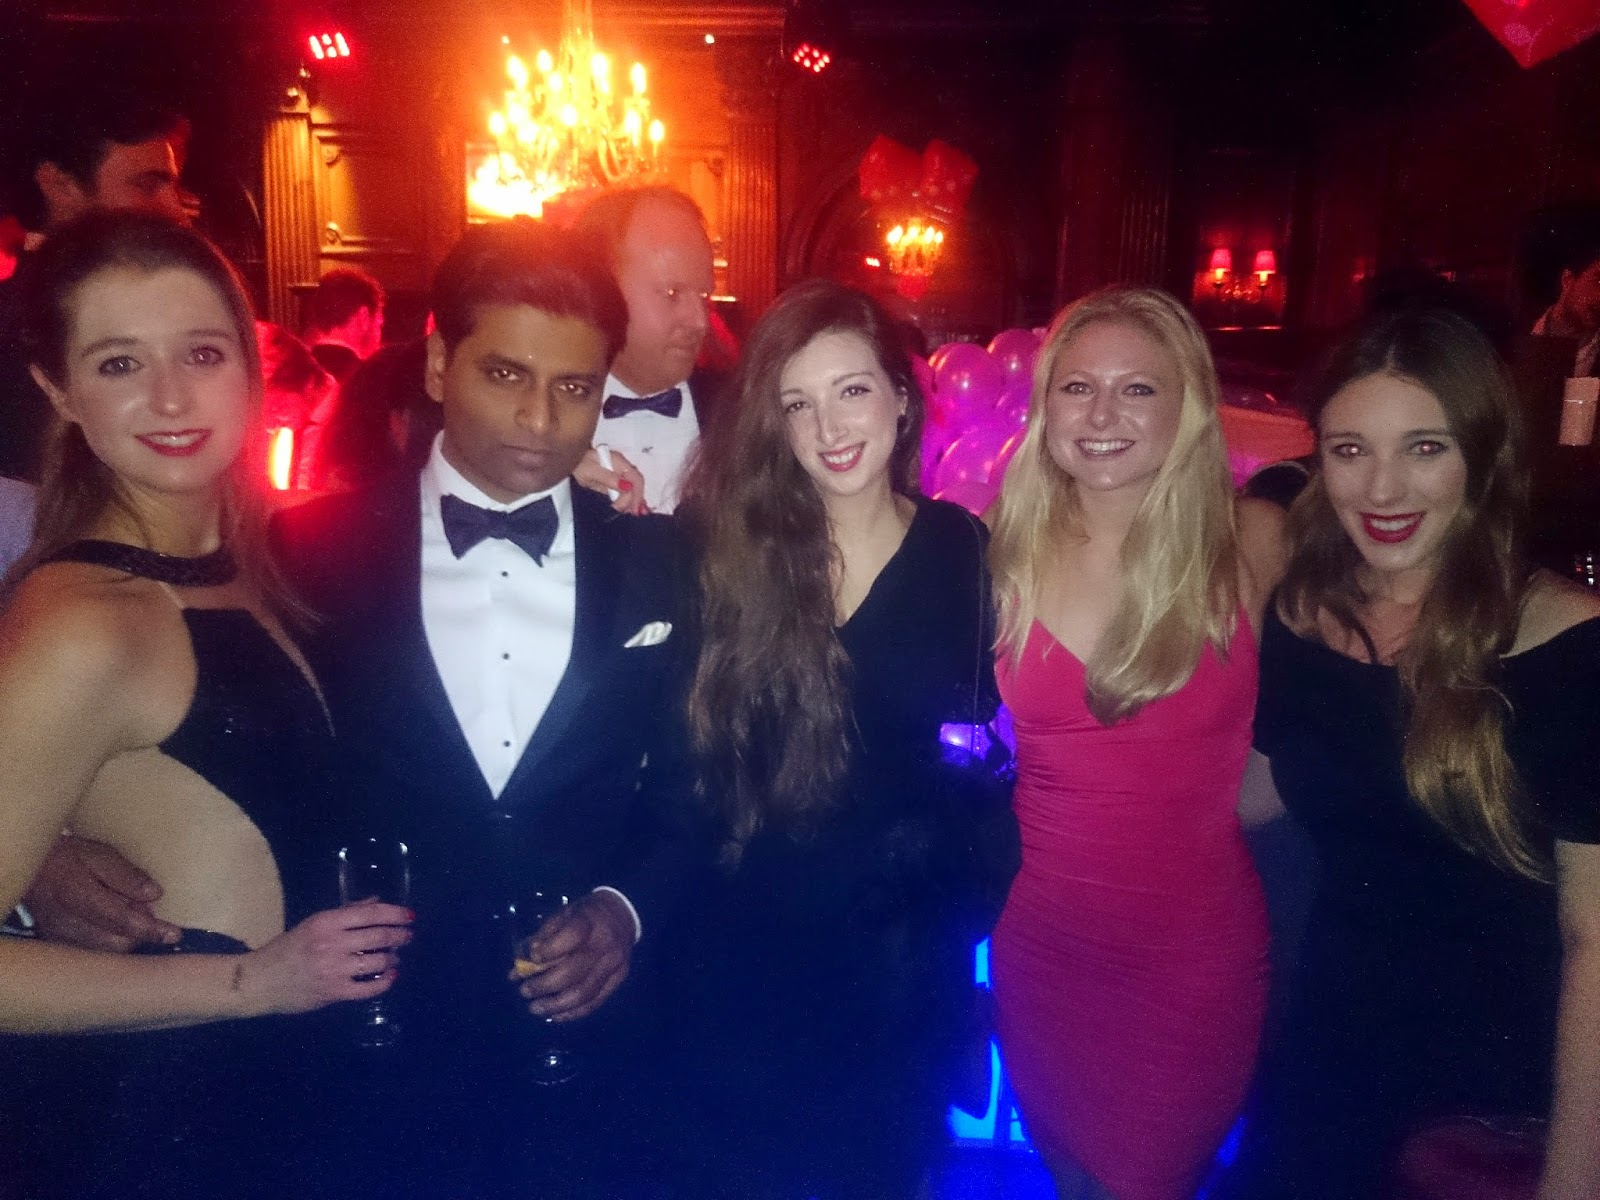 Casino Royale Party at Tramp nightclub London